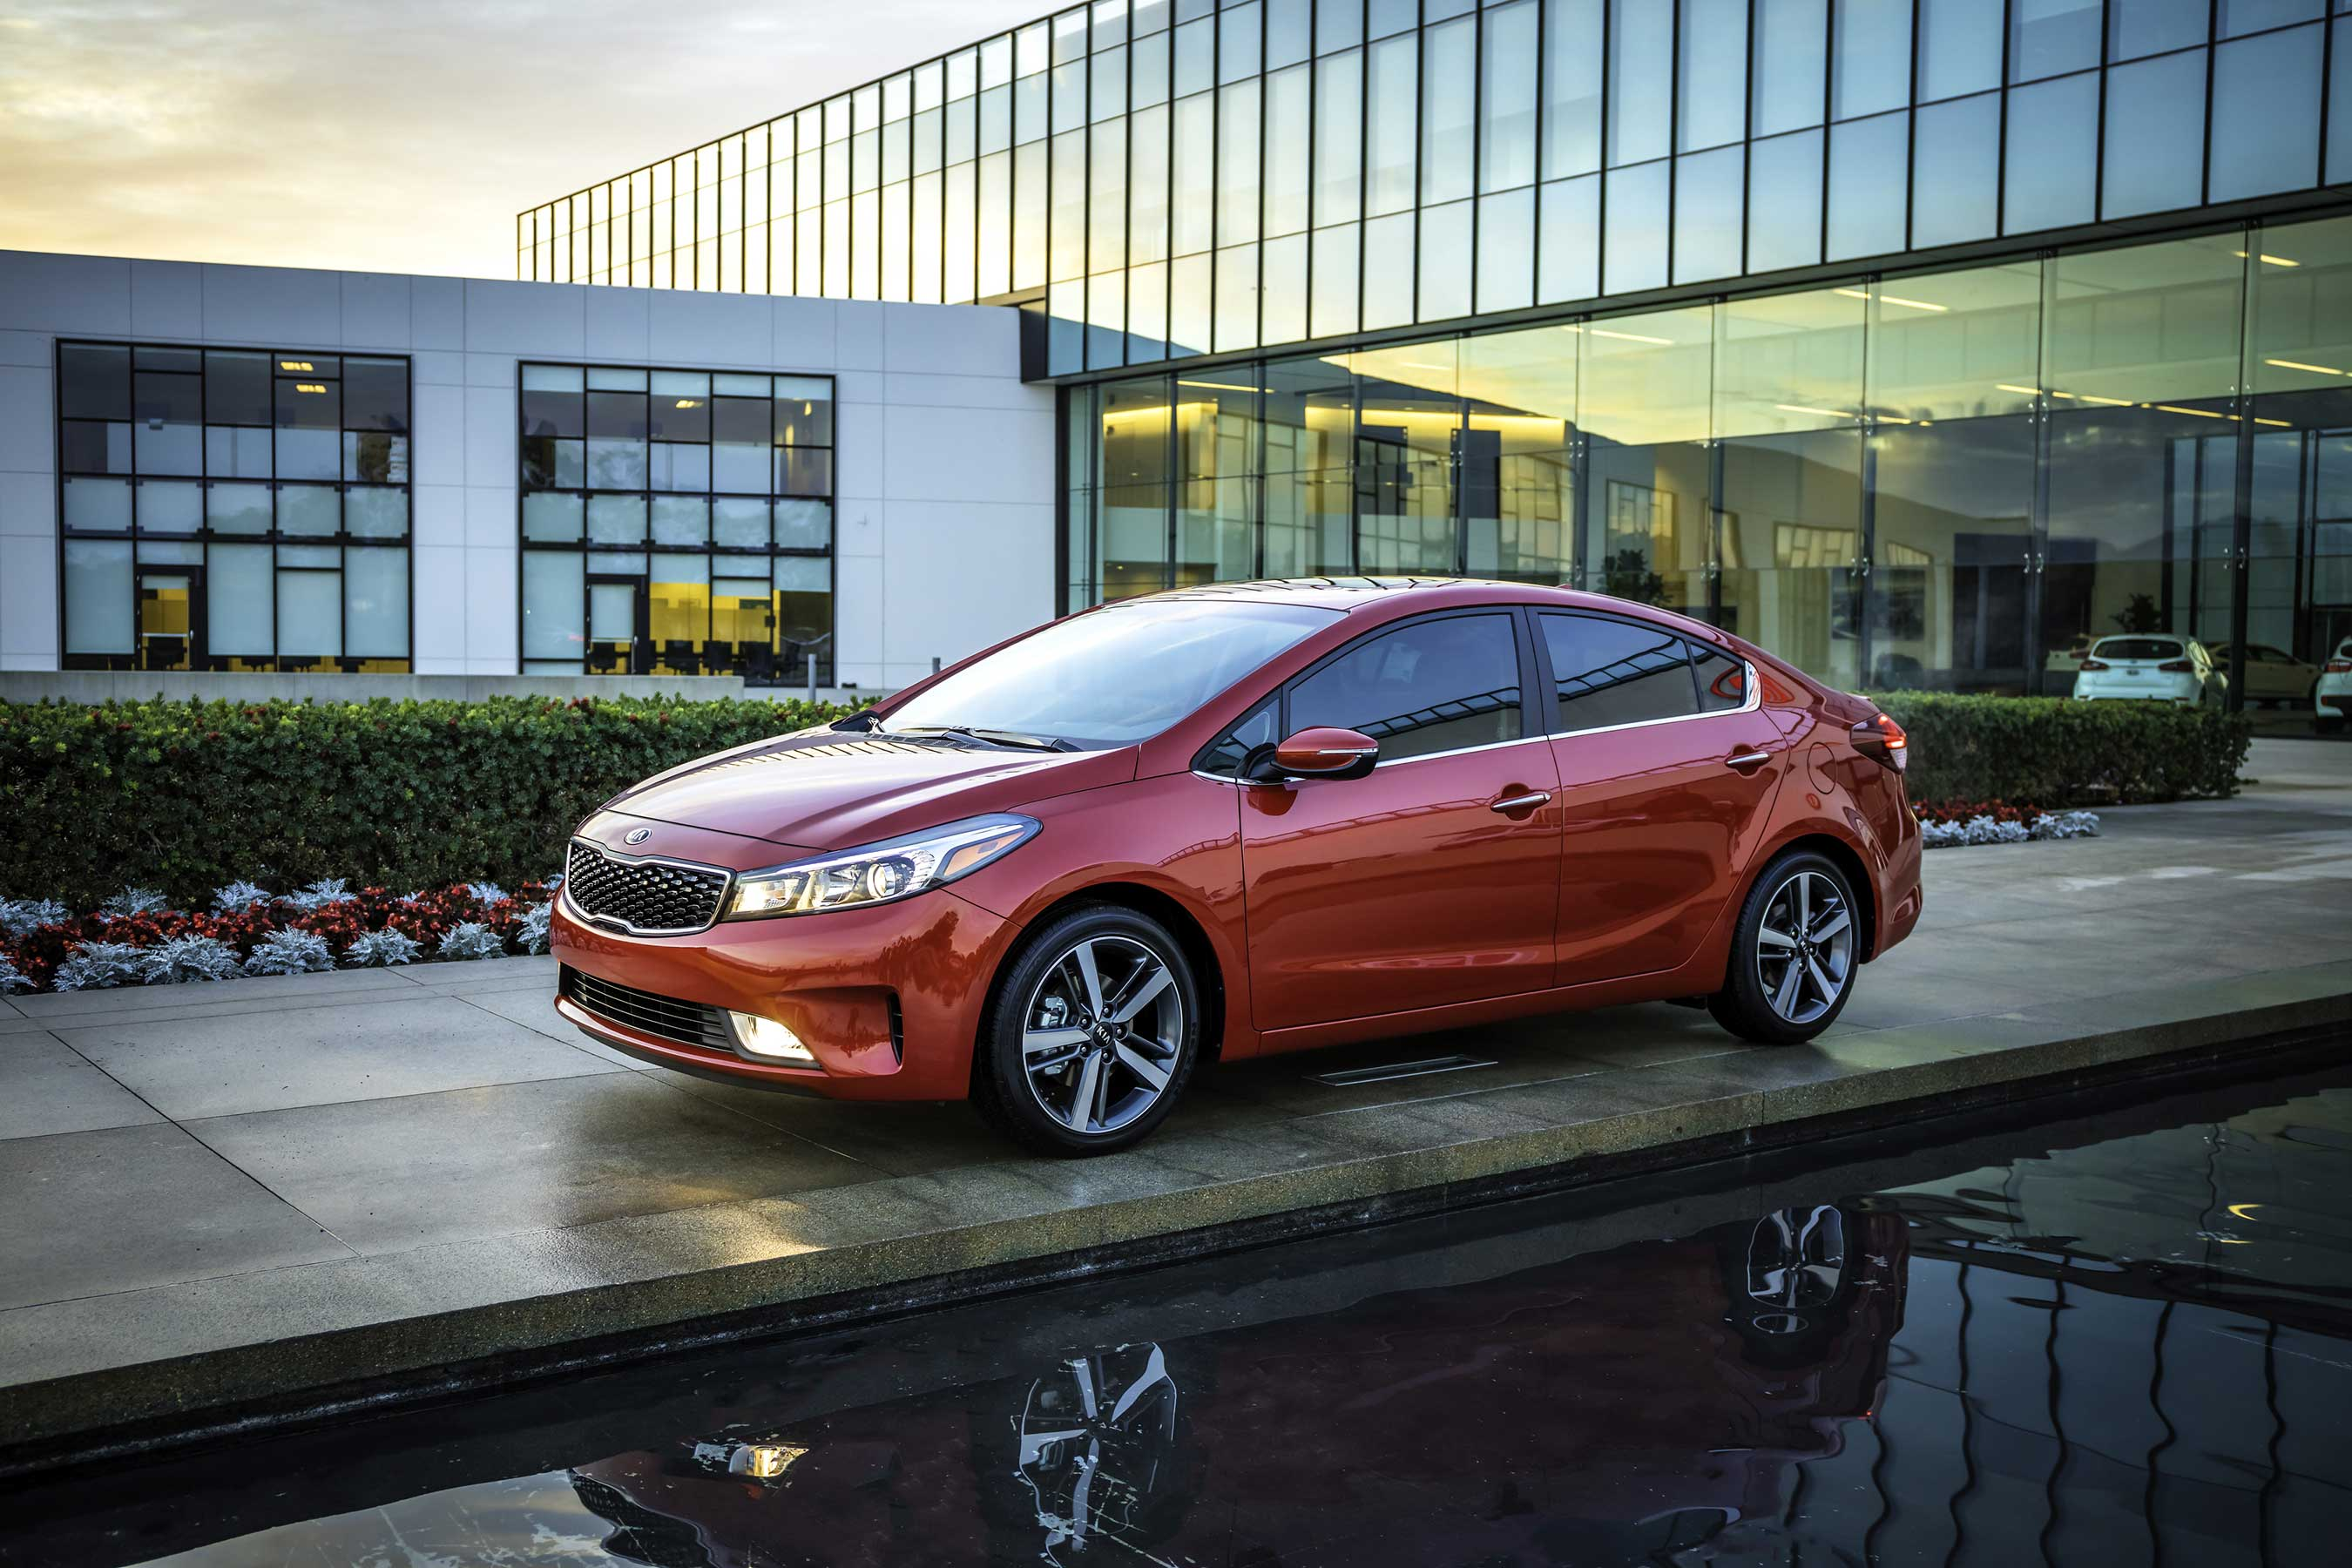 Kia Forte earns the J.D. Power Initial Quality Study (IQS) award in the Compact Car segment.